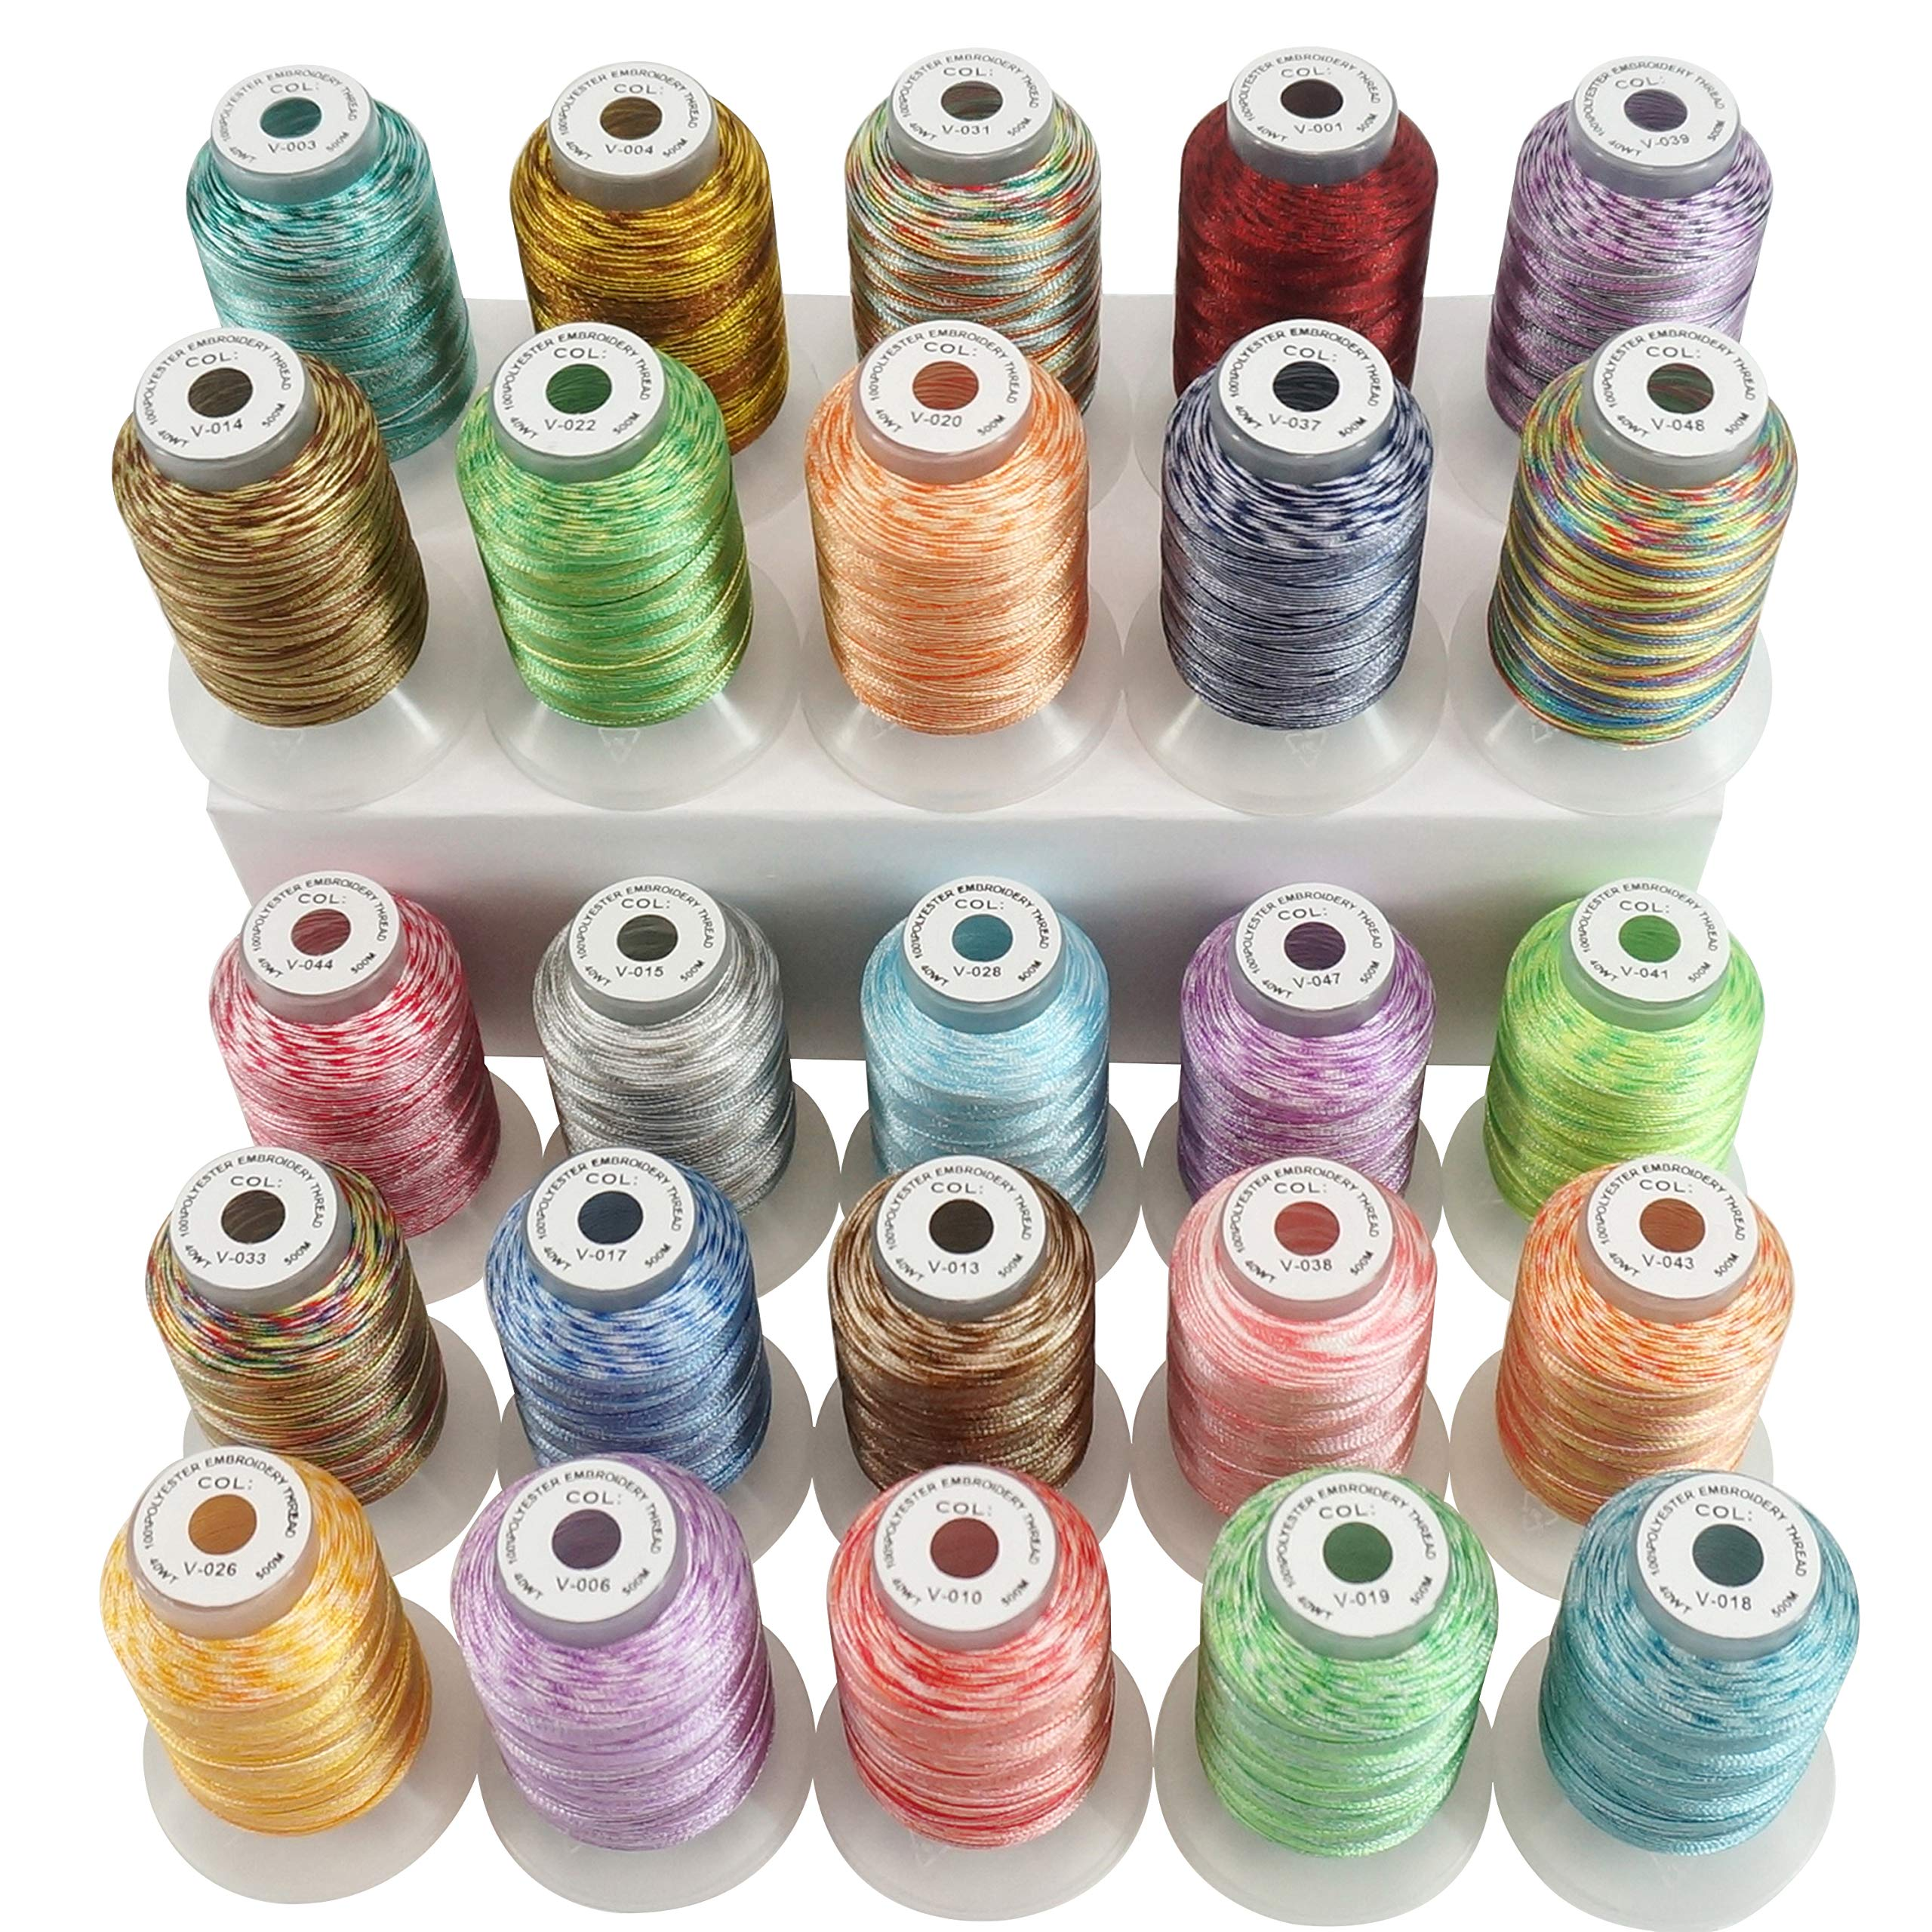 New brothread 25 Colors Variegated Polyester Embroidery Machine Thread Kit 500M (550Y) Each Spool for Brother Janome Babylock Singer Pfaff Bernina Husqvaran Embroidery and Sewing Machines by New brothread